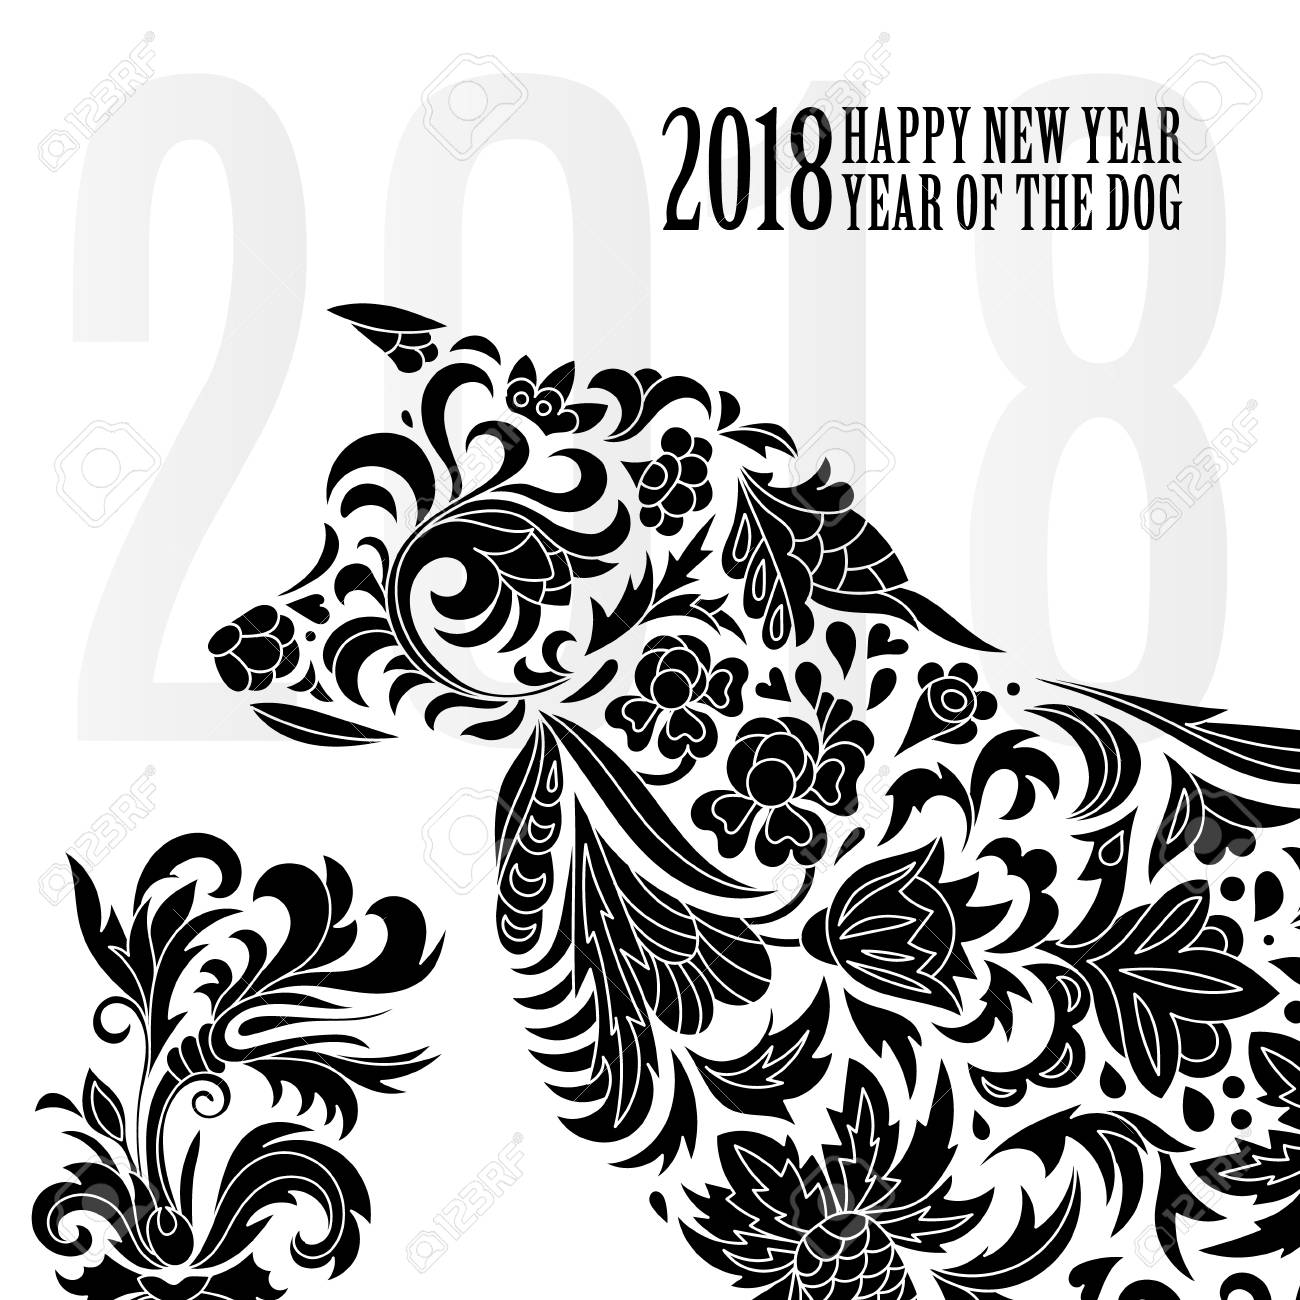 2018 Greeting Chinese New Year Card With Stylized Dog One Color Print Vector